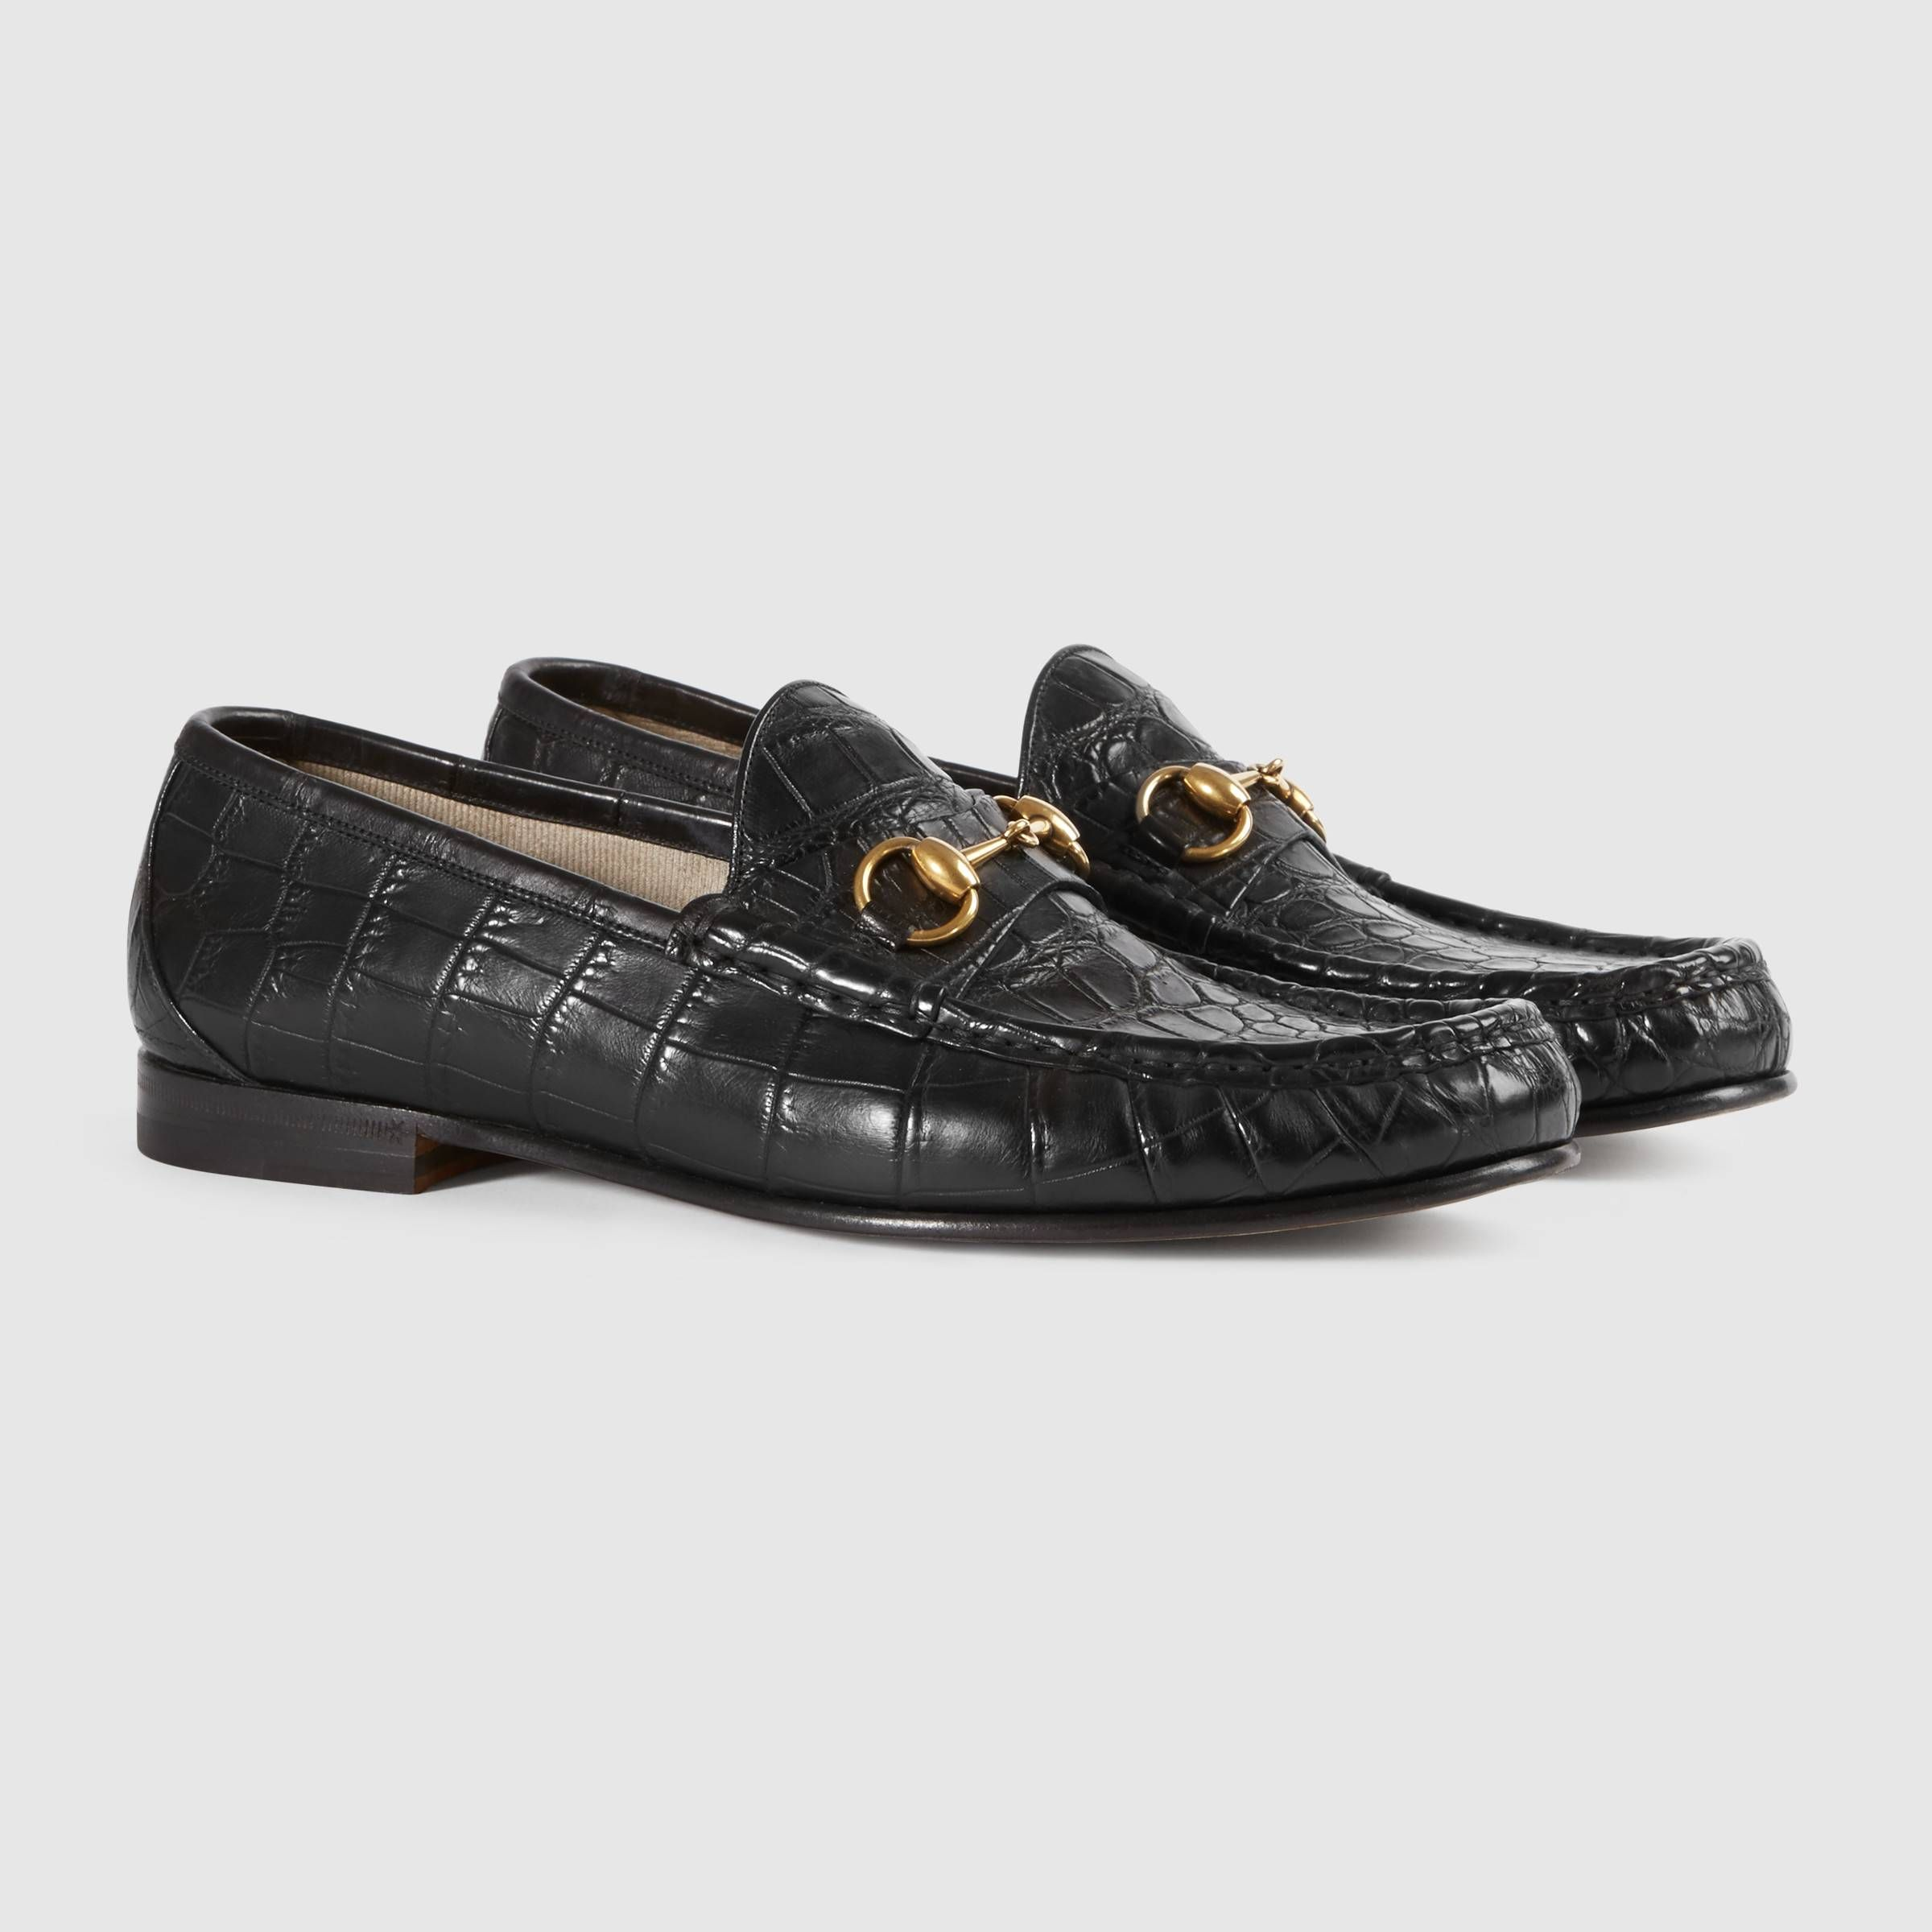 d4027f6c7d5 1953 Horsebit crocodile loafer - Gucci Men s Moccasins   Loafers  307929EC2001000